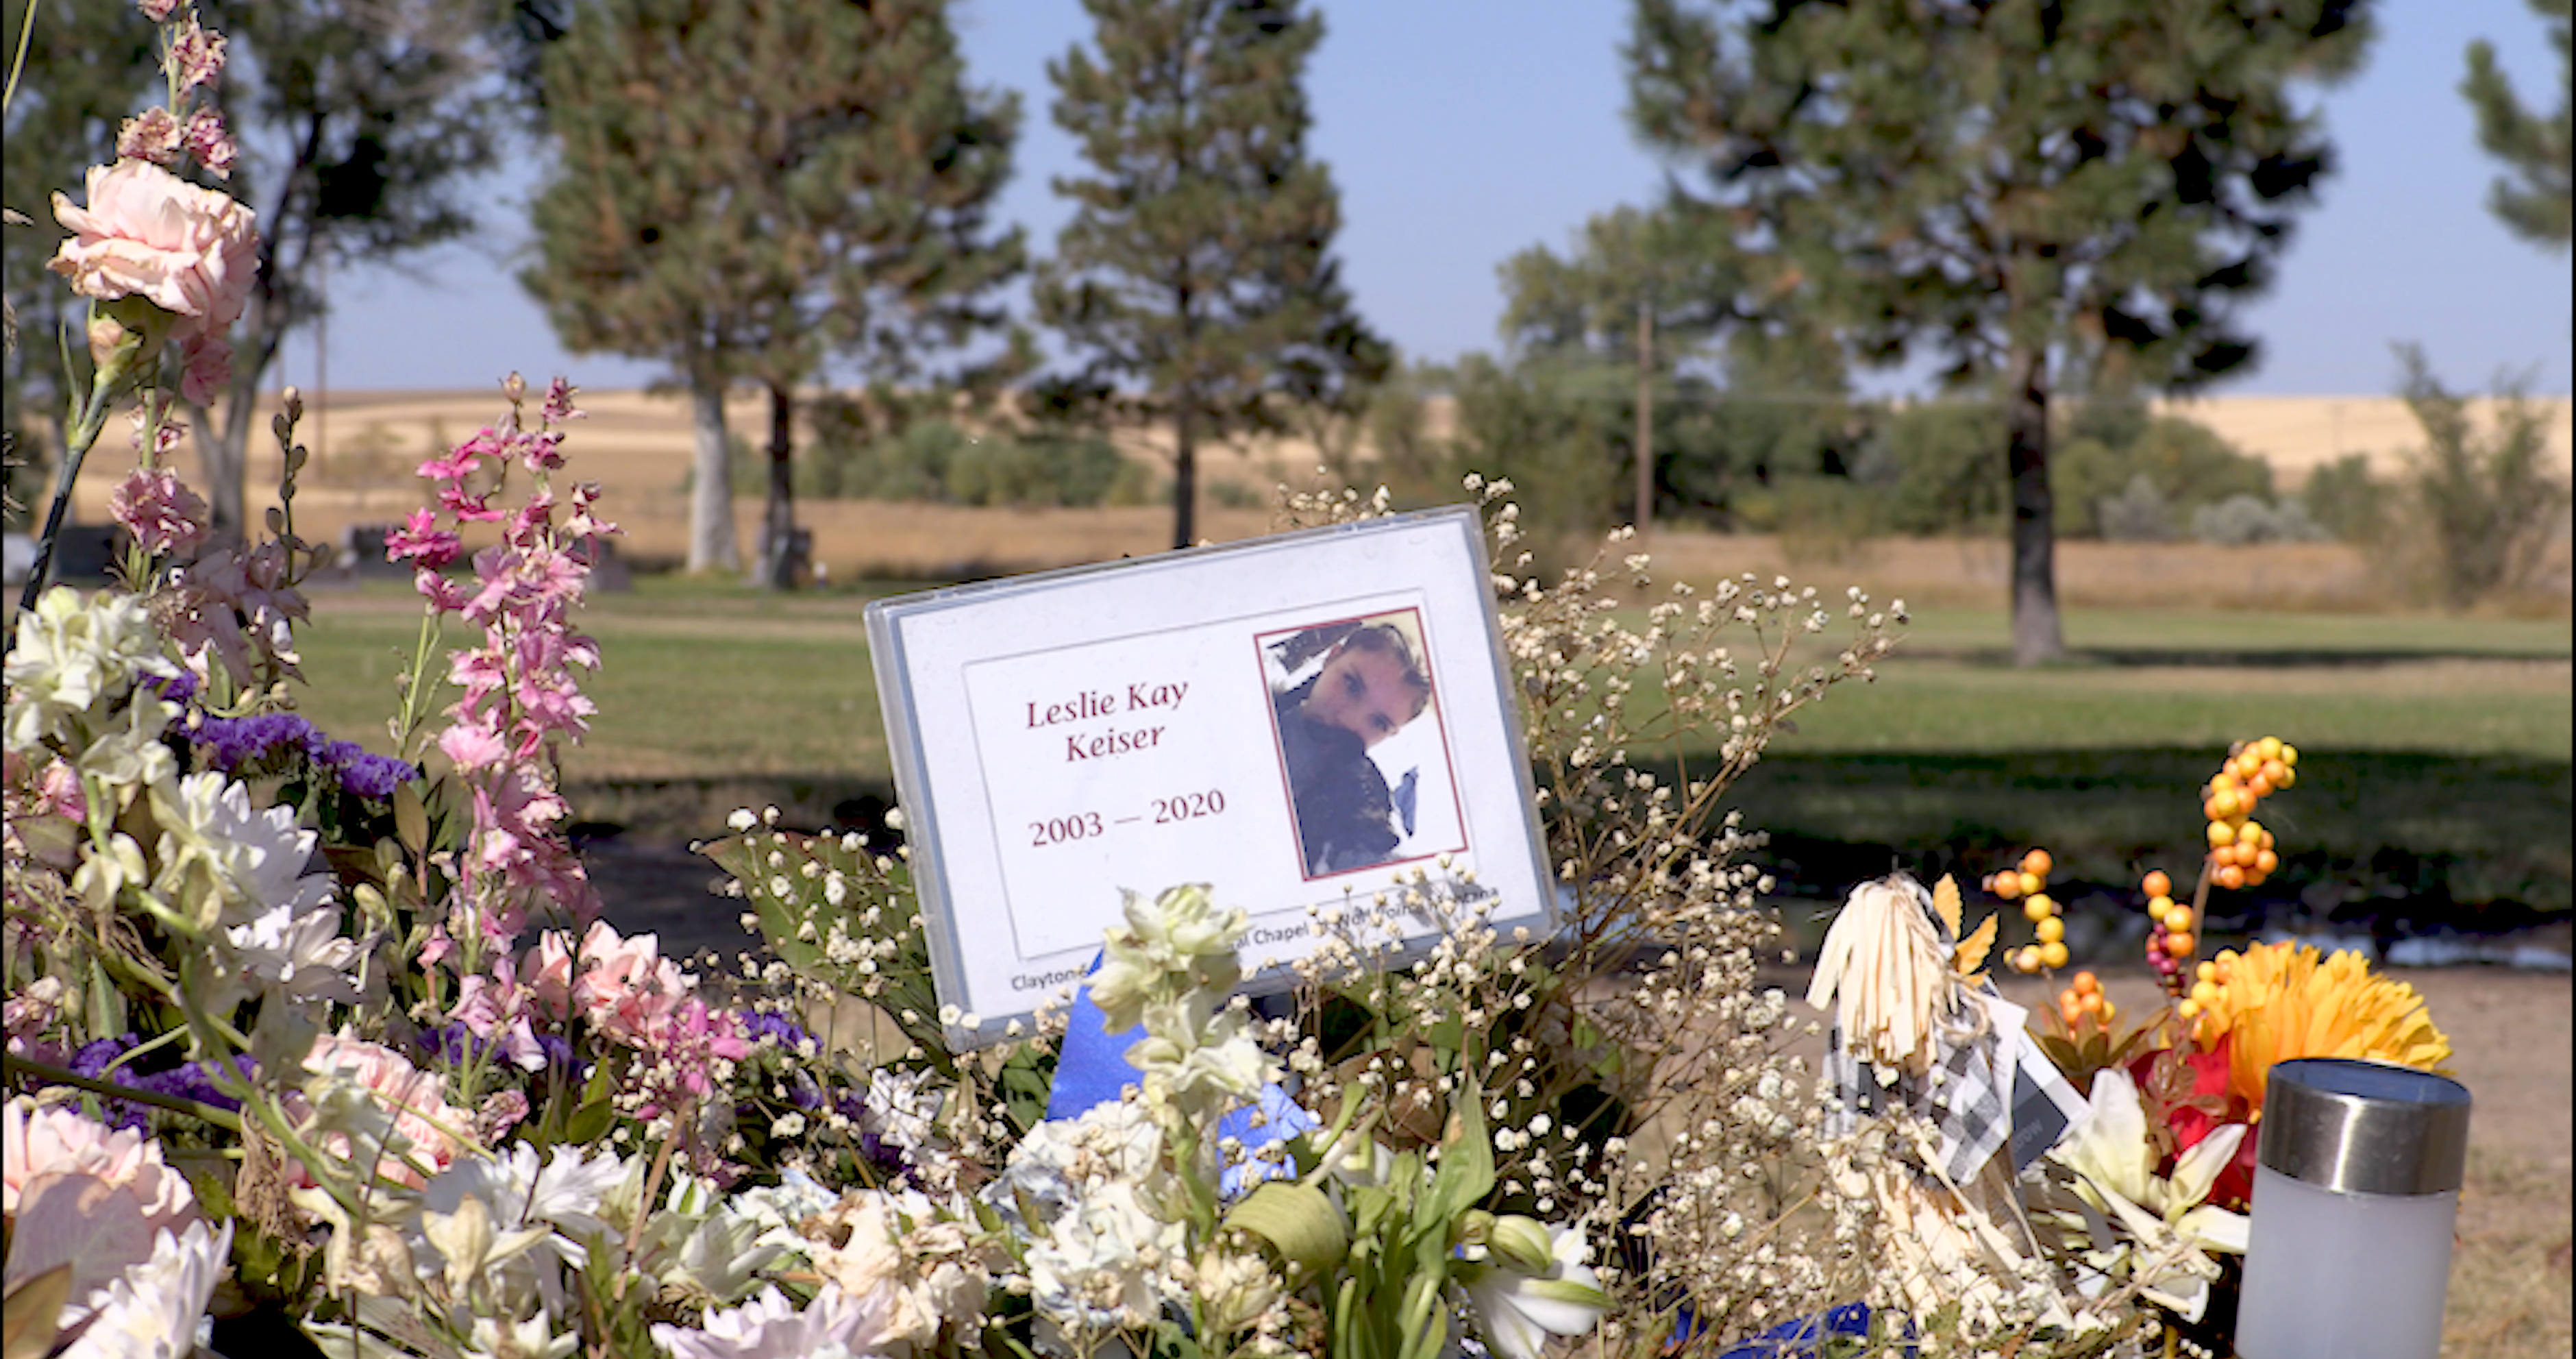 Leslie Keiser's grave is at the edge of Wolf Point, a small community on the Fort Peck Indian Reservation in Montana. Leslie is one of at least two teenagers on the reservation who reportedly died by suicide this summer.